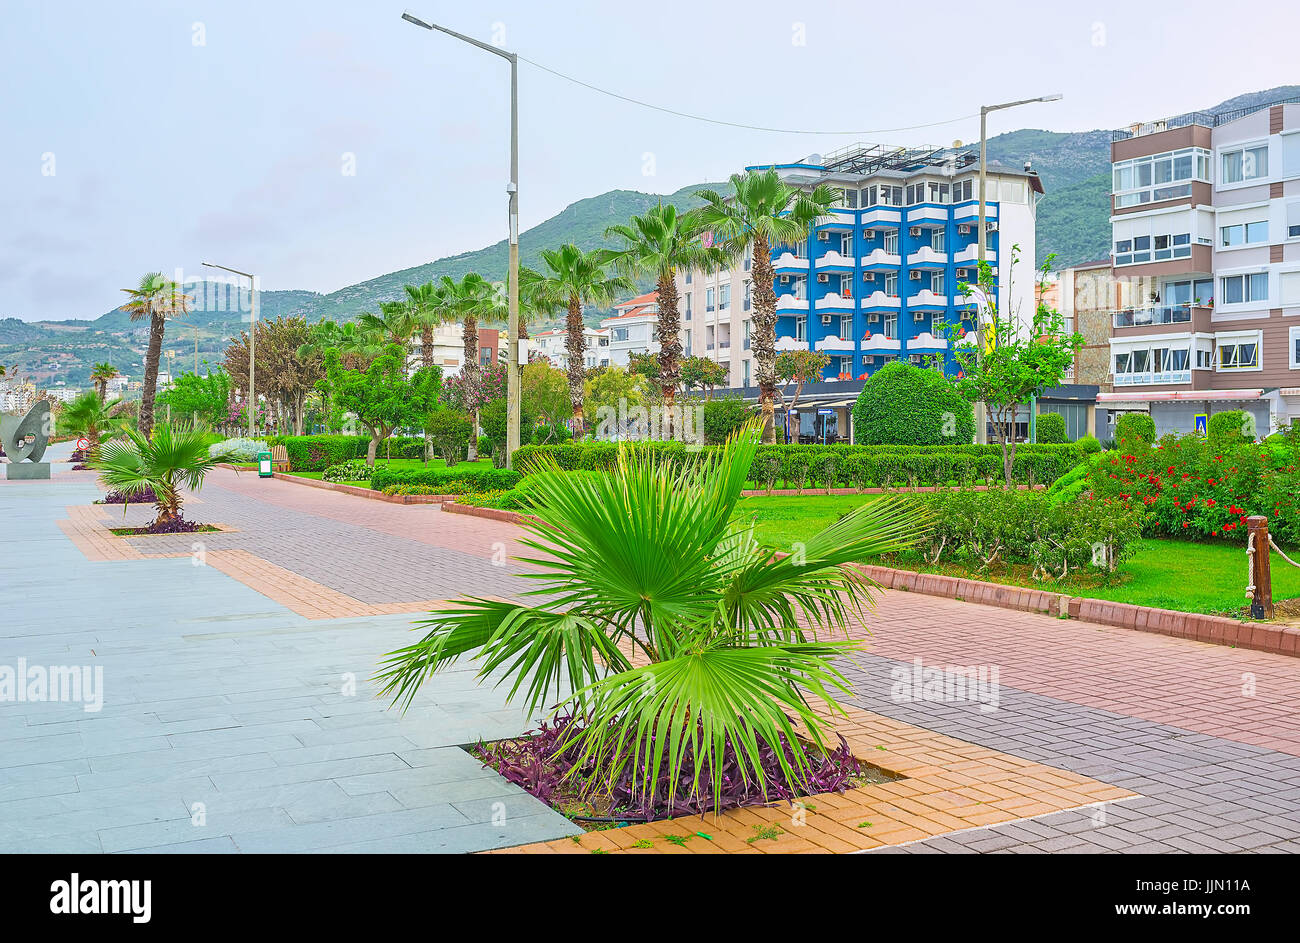 Alanya resort boasts perfect city landscaping - the promenades, avenues and public parks boasts wide variety of - Stock Image